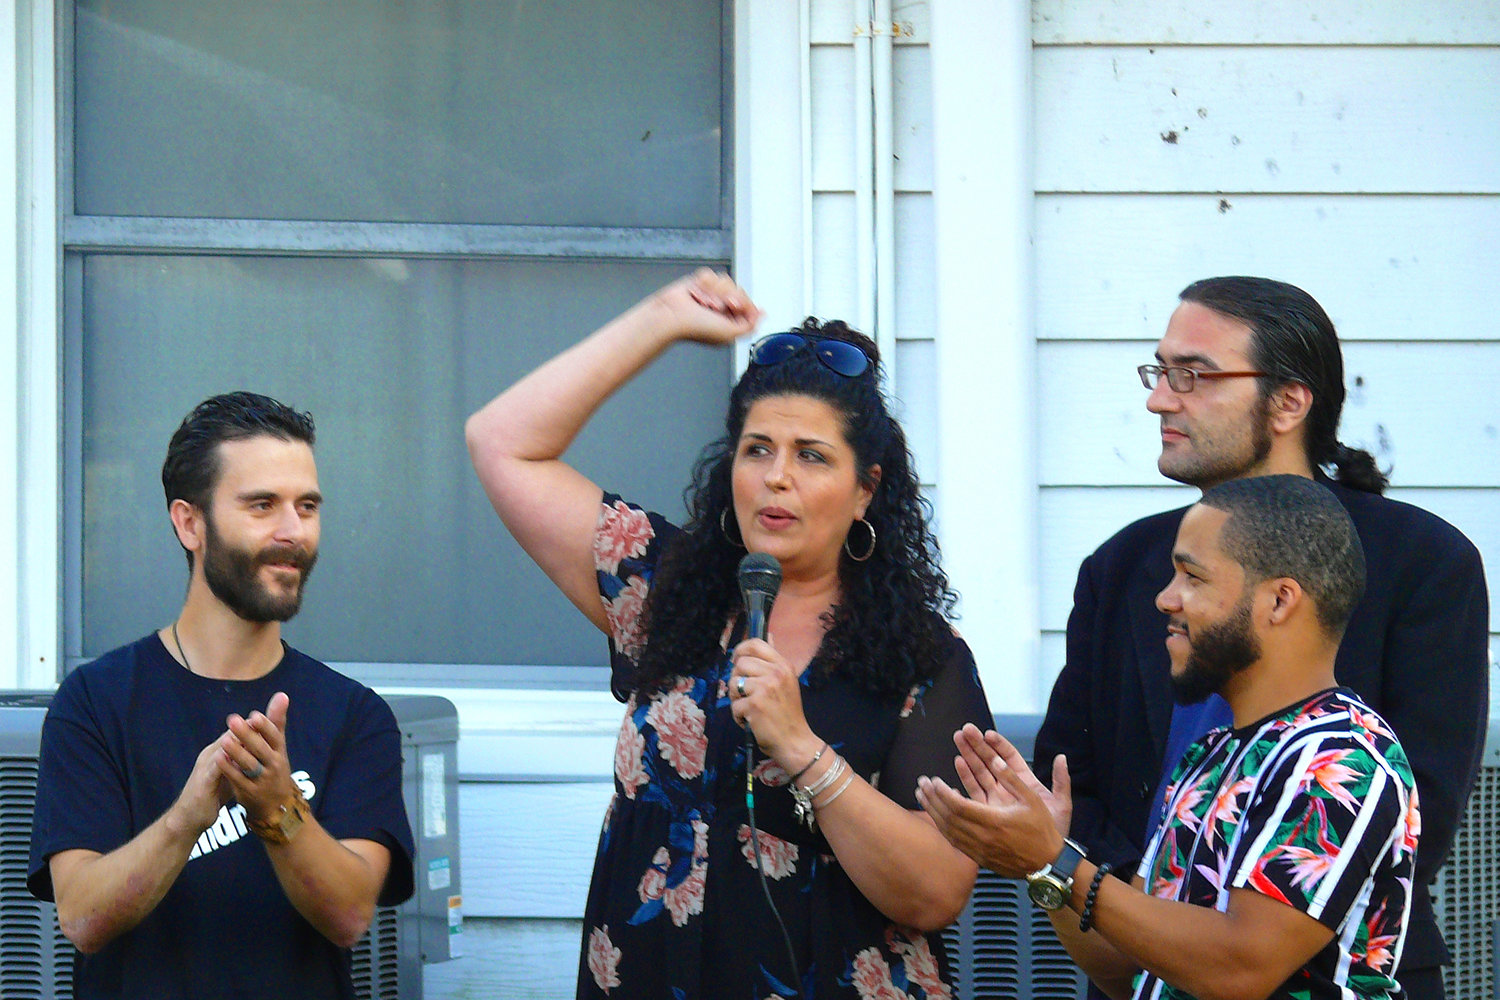 Gina Centauro, one of the founders of Rescuing Families Inc., told the crowd last Saturday that every dollar they spent at the fundraiser would benefit families in need. She was with, from left, Vincent Centauro, Roger Grand-Pierre and Michael Cantone.